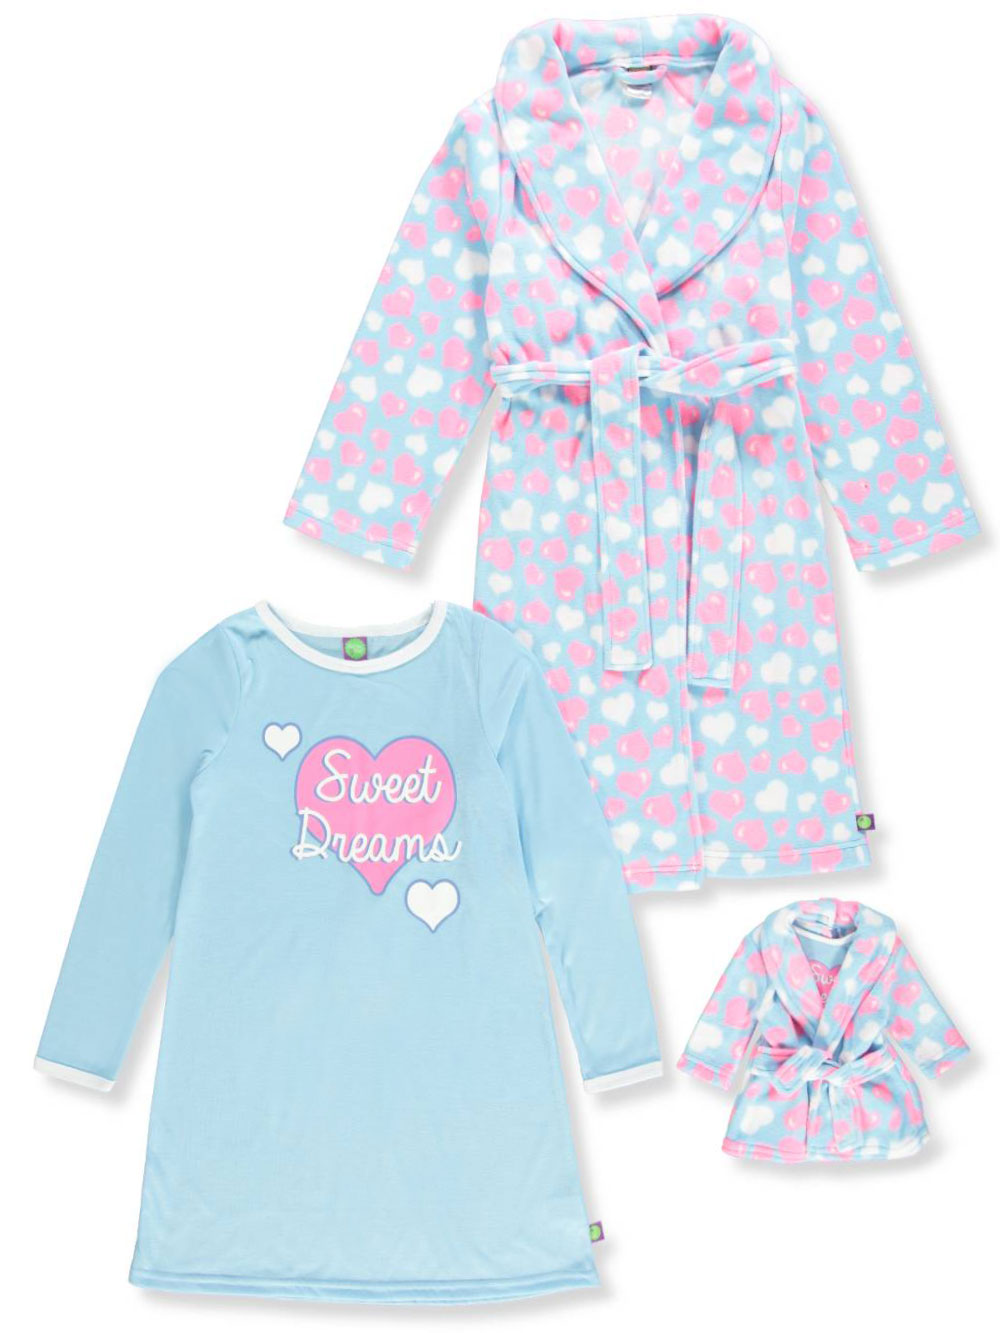 Dollie & Me Girls' 2-Piece Pajama Set with Doll Outfit